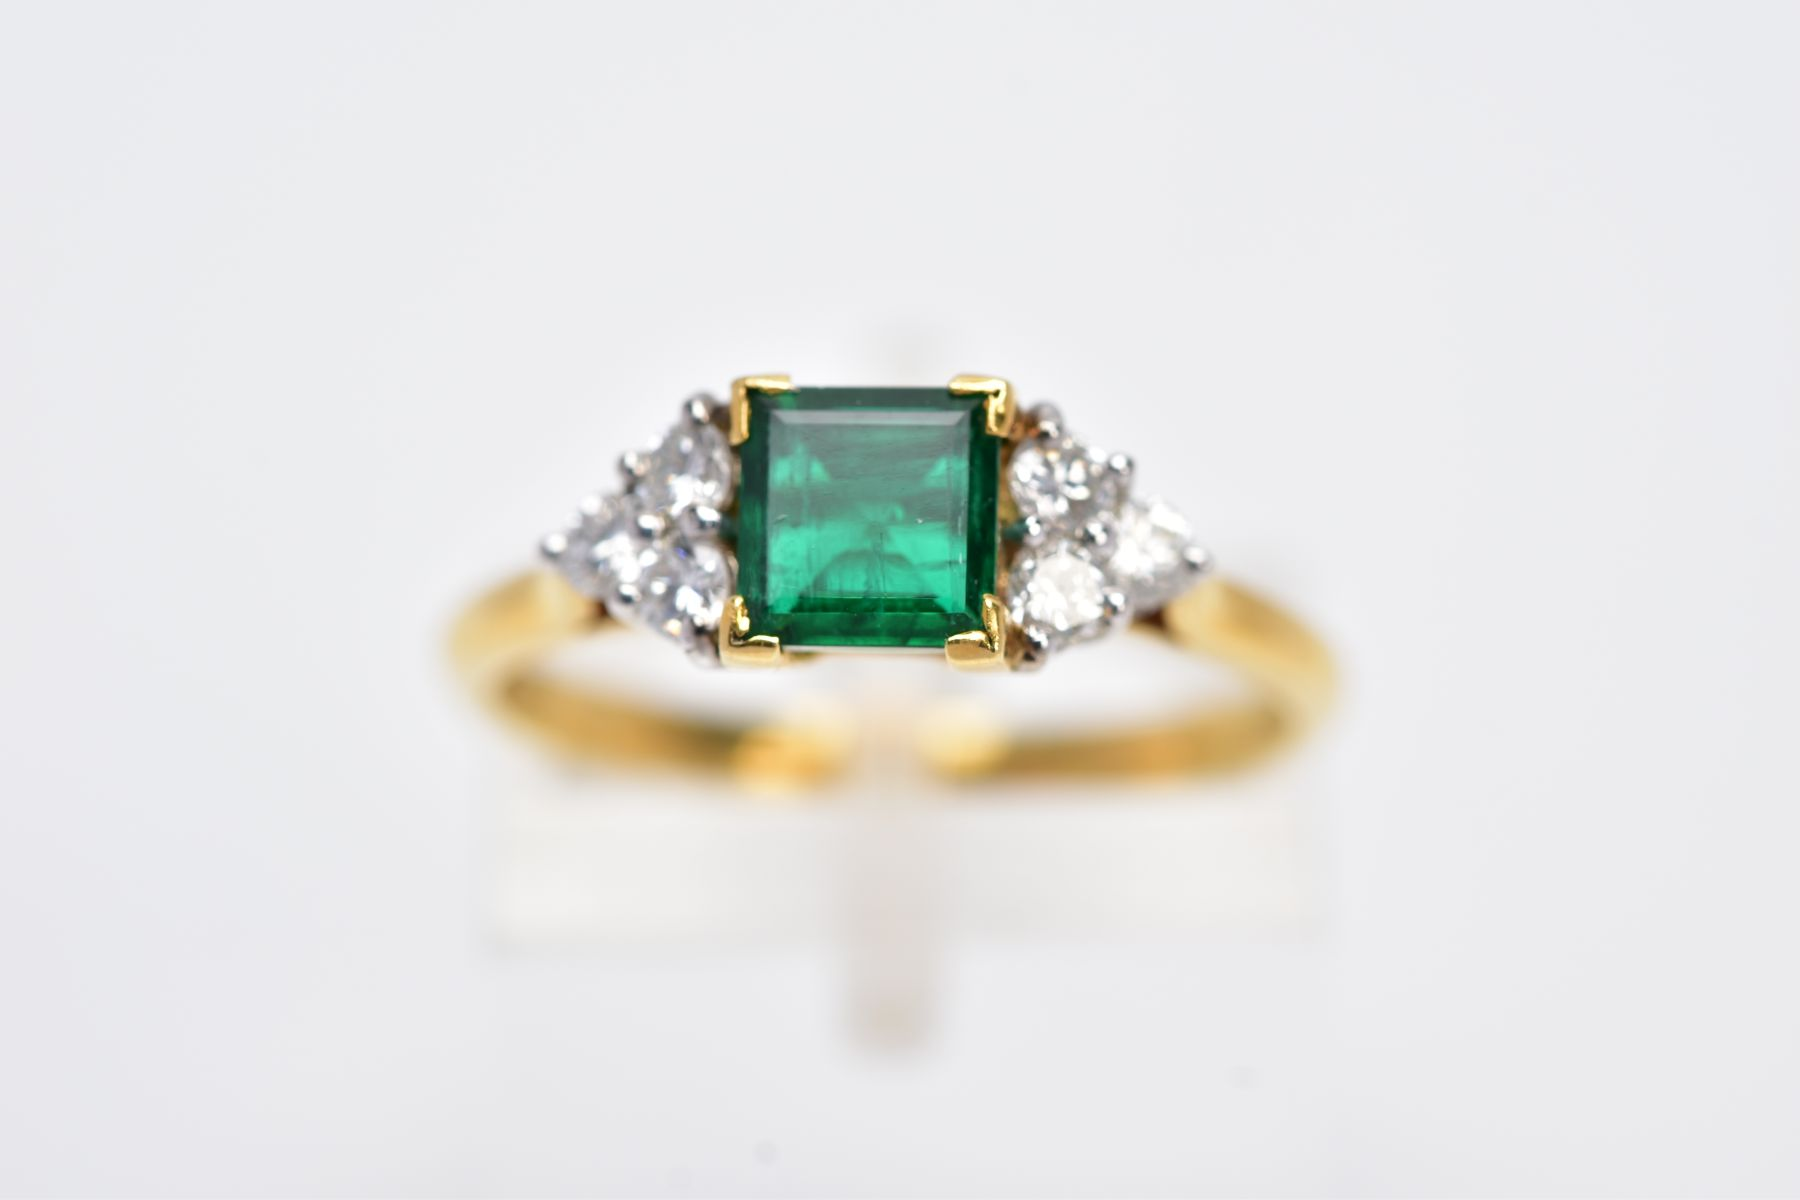 A LATE 20TH CENTURY 18CT GOLD EMERALD AND DIAMOND RING, centring on a square cut emerald measuring - Image 5 of 5